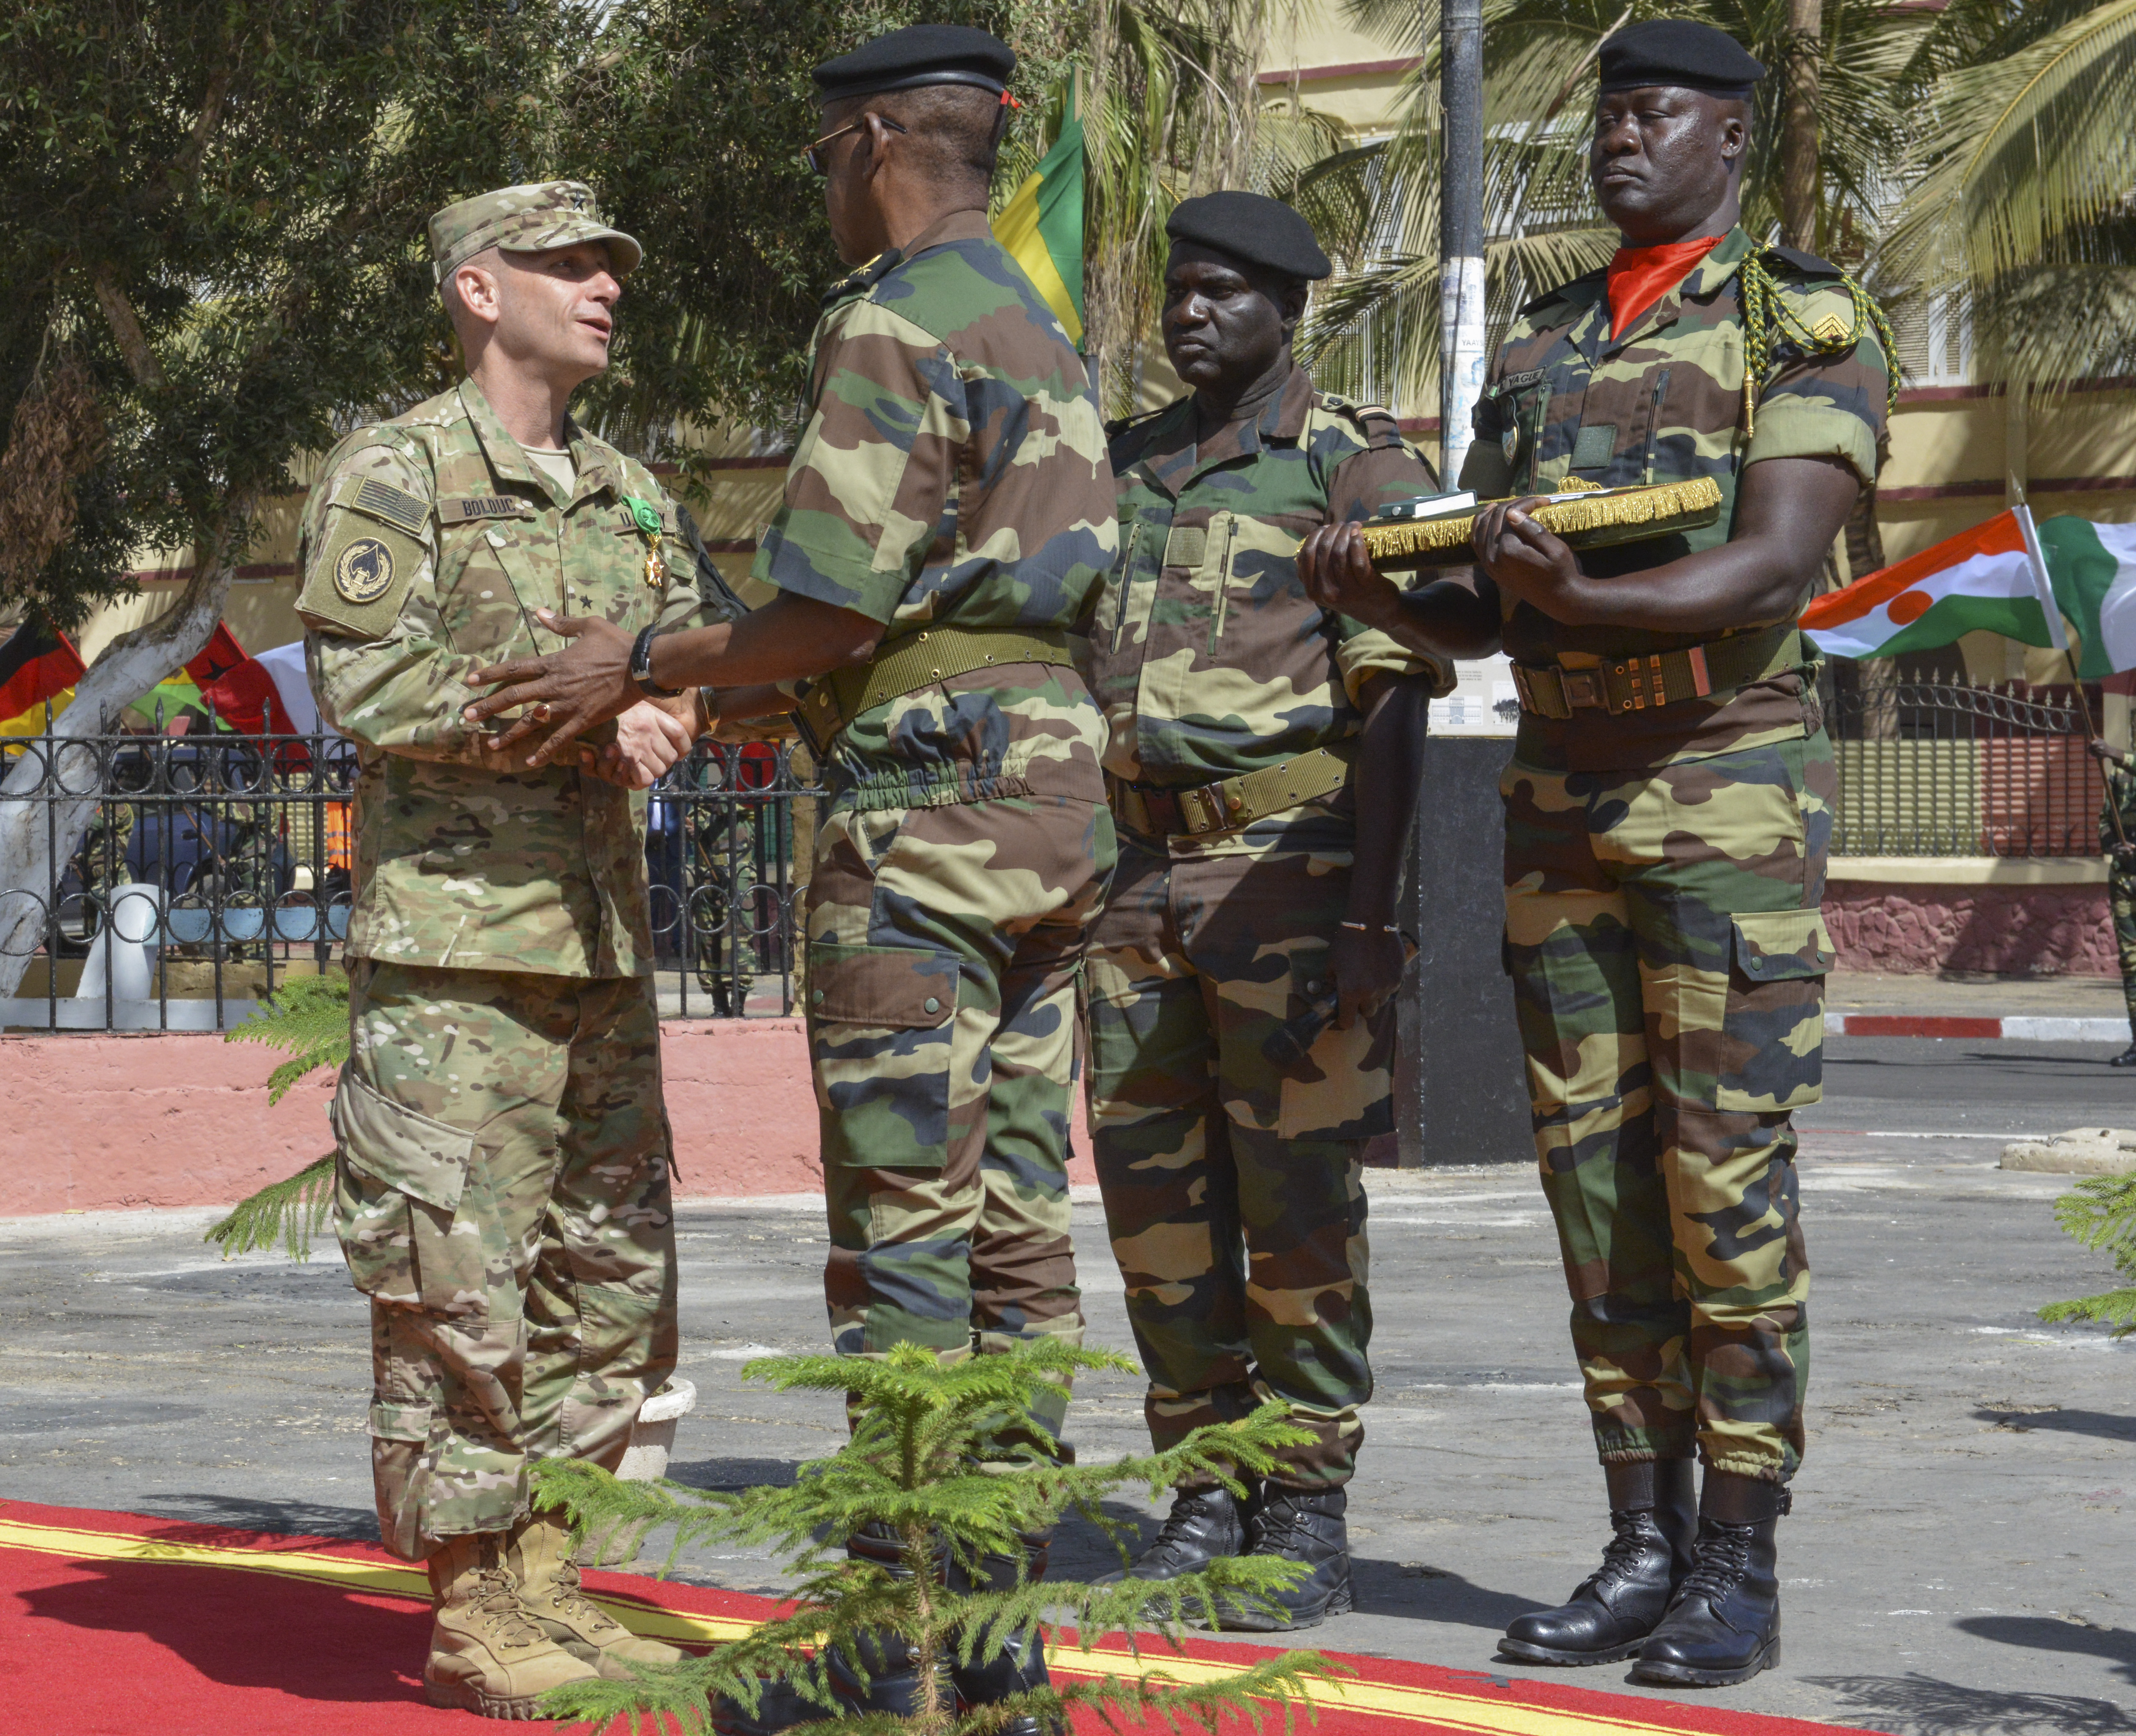 U.S. Army Brig. Gen. Donald C. Bolduc, Special Operations Command-Africa commander, shakes hands with Senegal Army Maj. Gen. Mamadou Sow, chief of general staff, after being inducted into the Senegal National Order of the Lion as part of the closing ceremony for Flintlock 2016 in St. Louis, Senegal, Feb. 29, 2016. The National Order of the Lion is the highest category of Senegal's military awards.